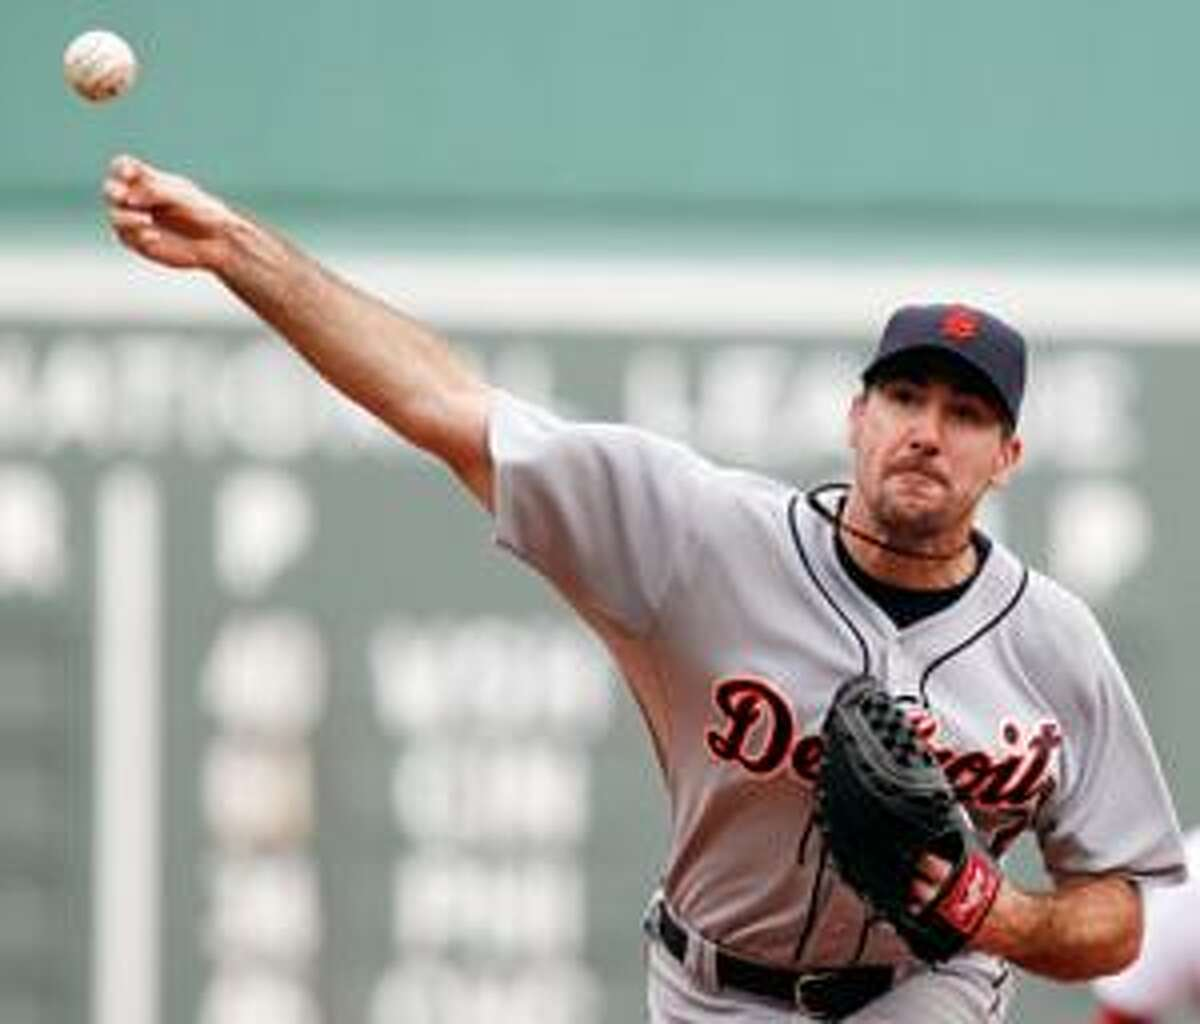 Detroit Tigers' Justin Verlander pitches against the Boston Red Sox during the first inning Thursday in Boston.